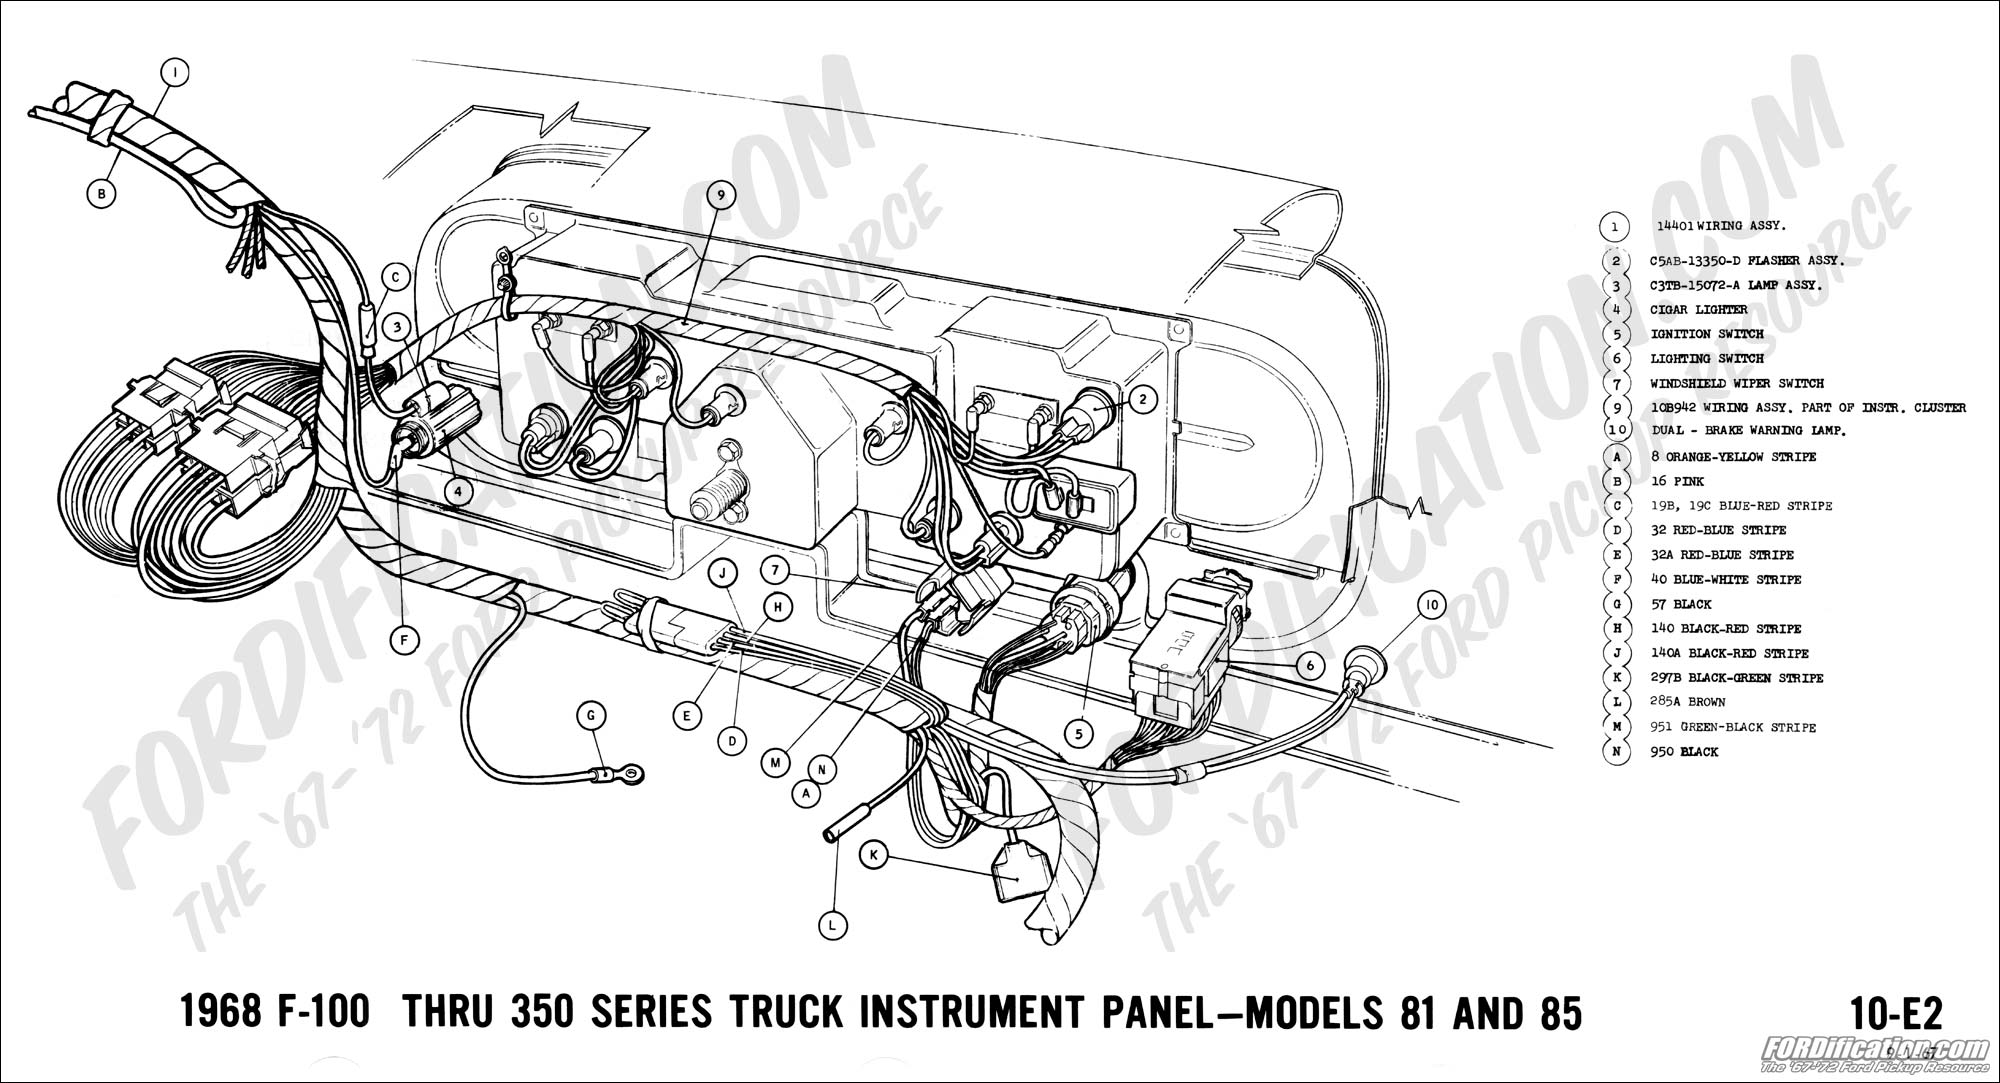 68 Mustang Alternator Wiring Diagram Smart Diagrams 1970 Ford Truck Technical Drawings And Schematics Section H 1968 Charging Circuit